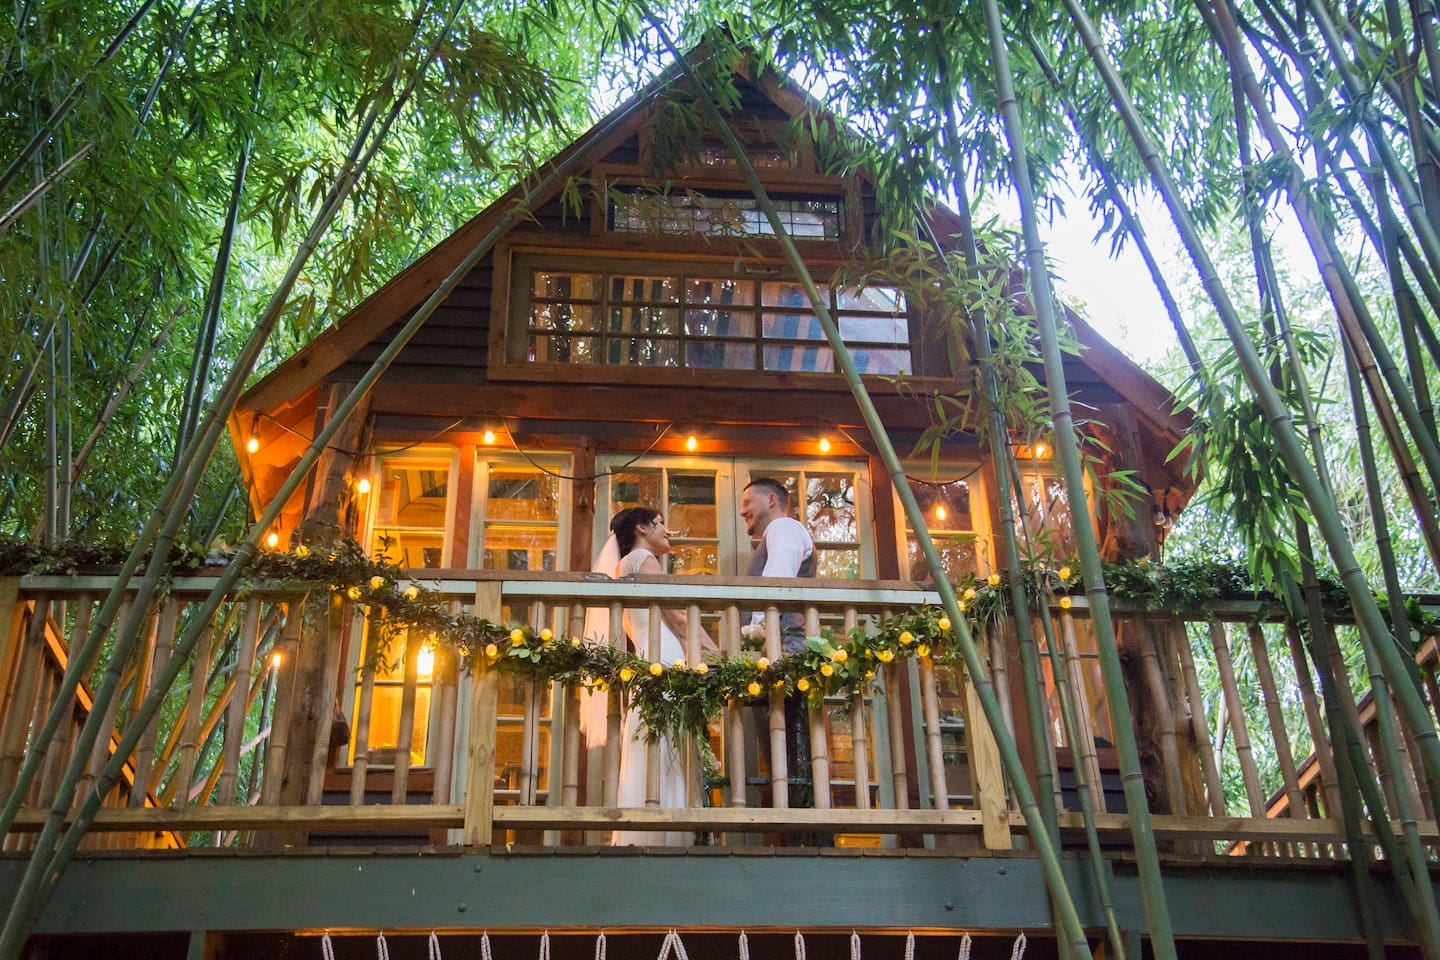 atlanta alpaca treehouse in the bamboo forest treehouses for rent in atlanta georgia united states